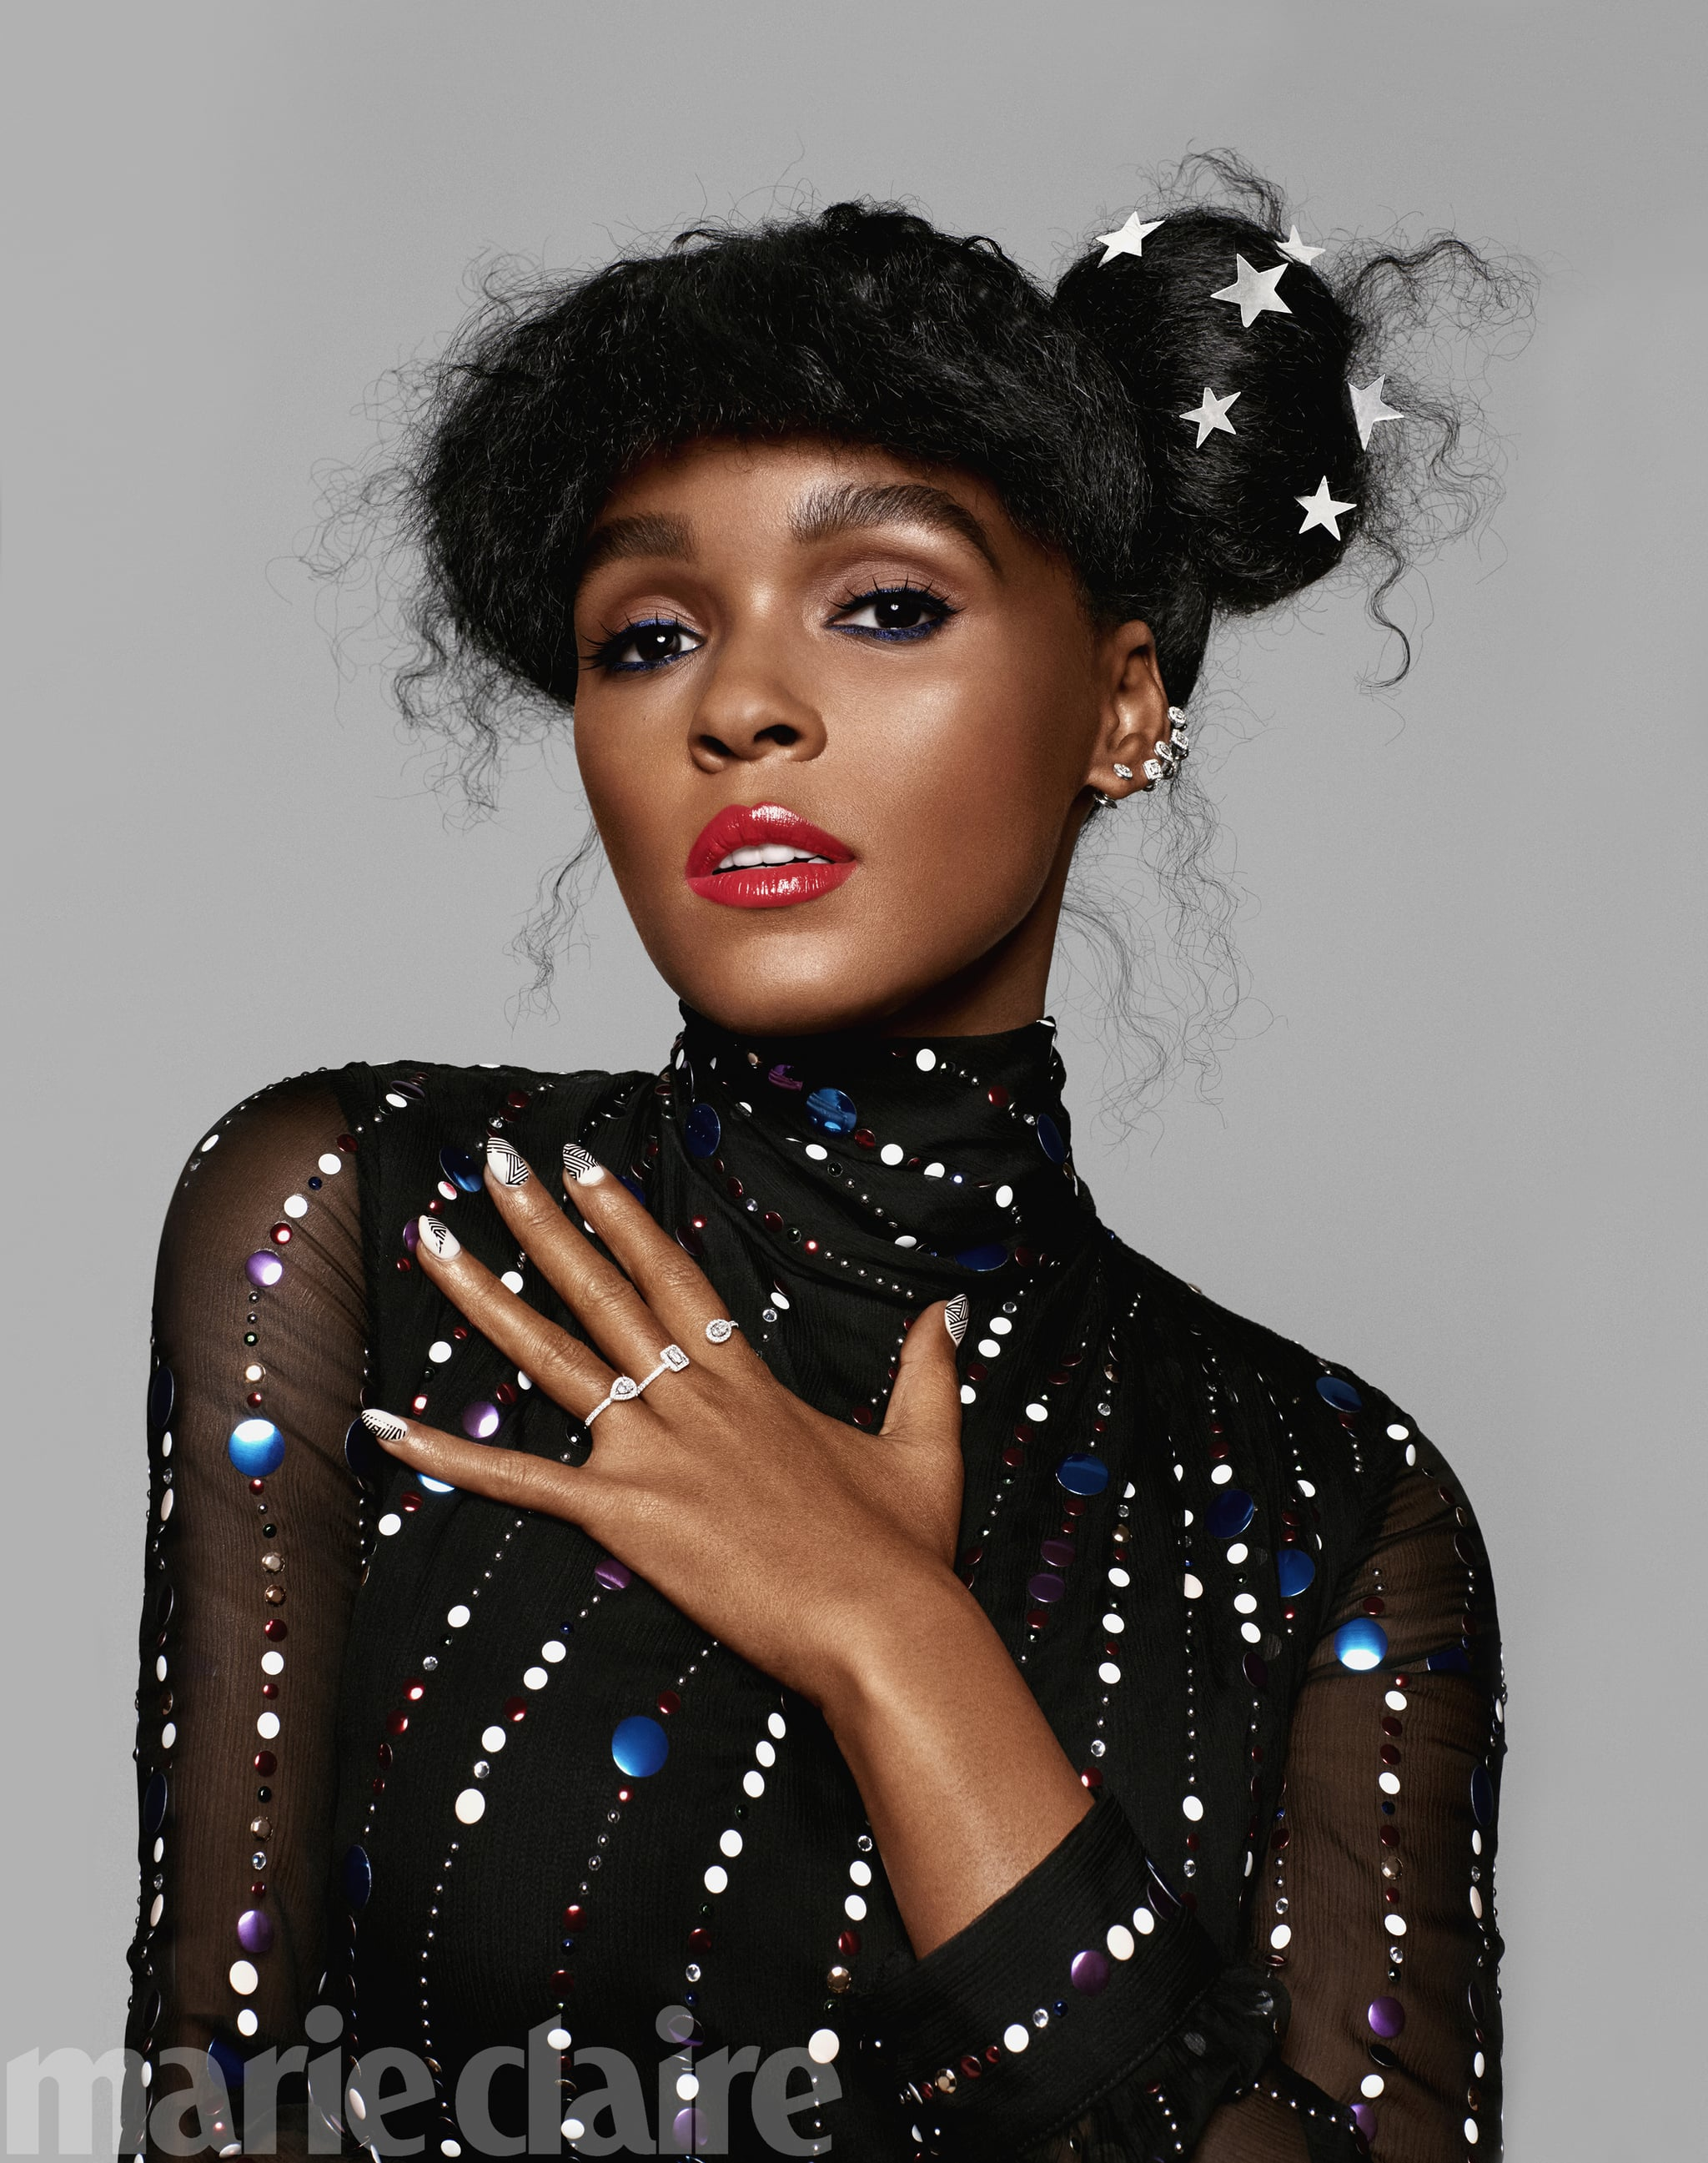 janelle monae quotes in marie claire may 2017 issue